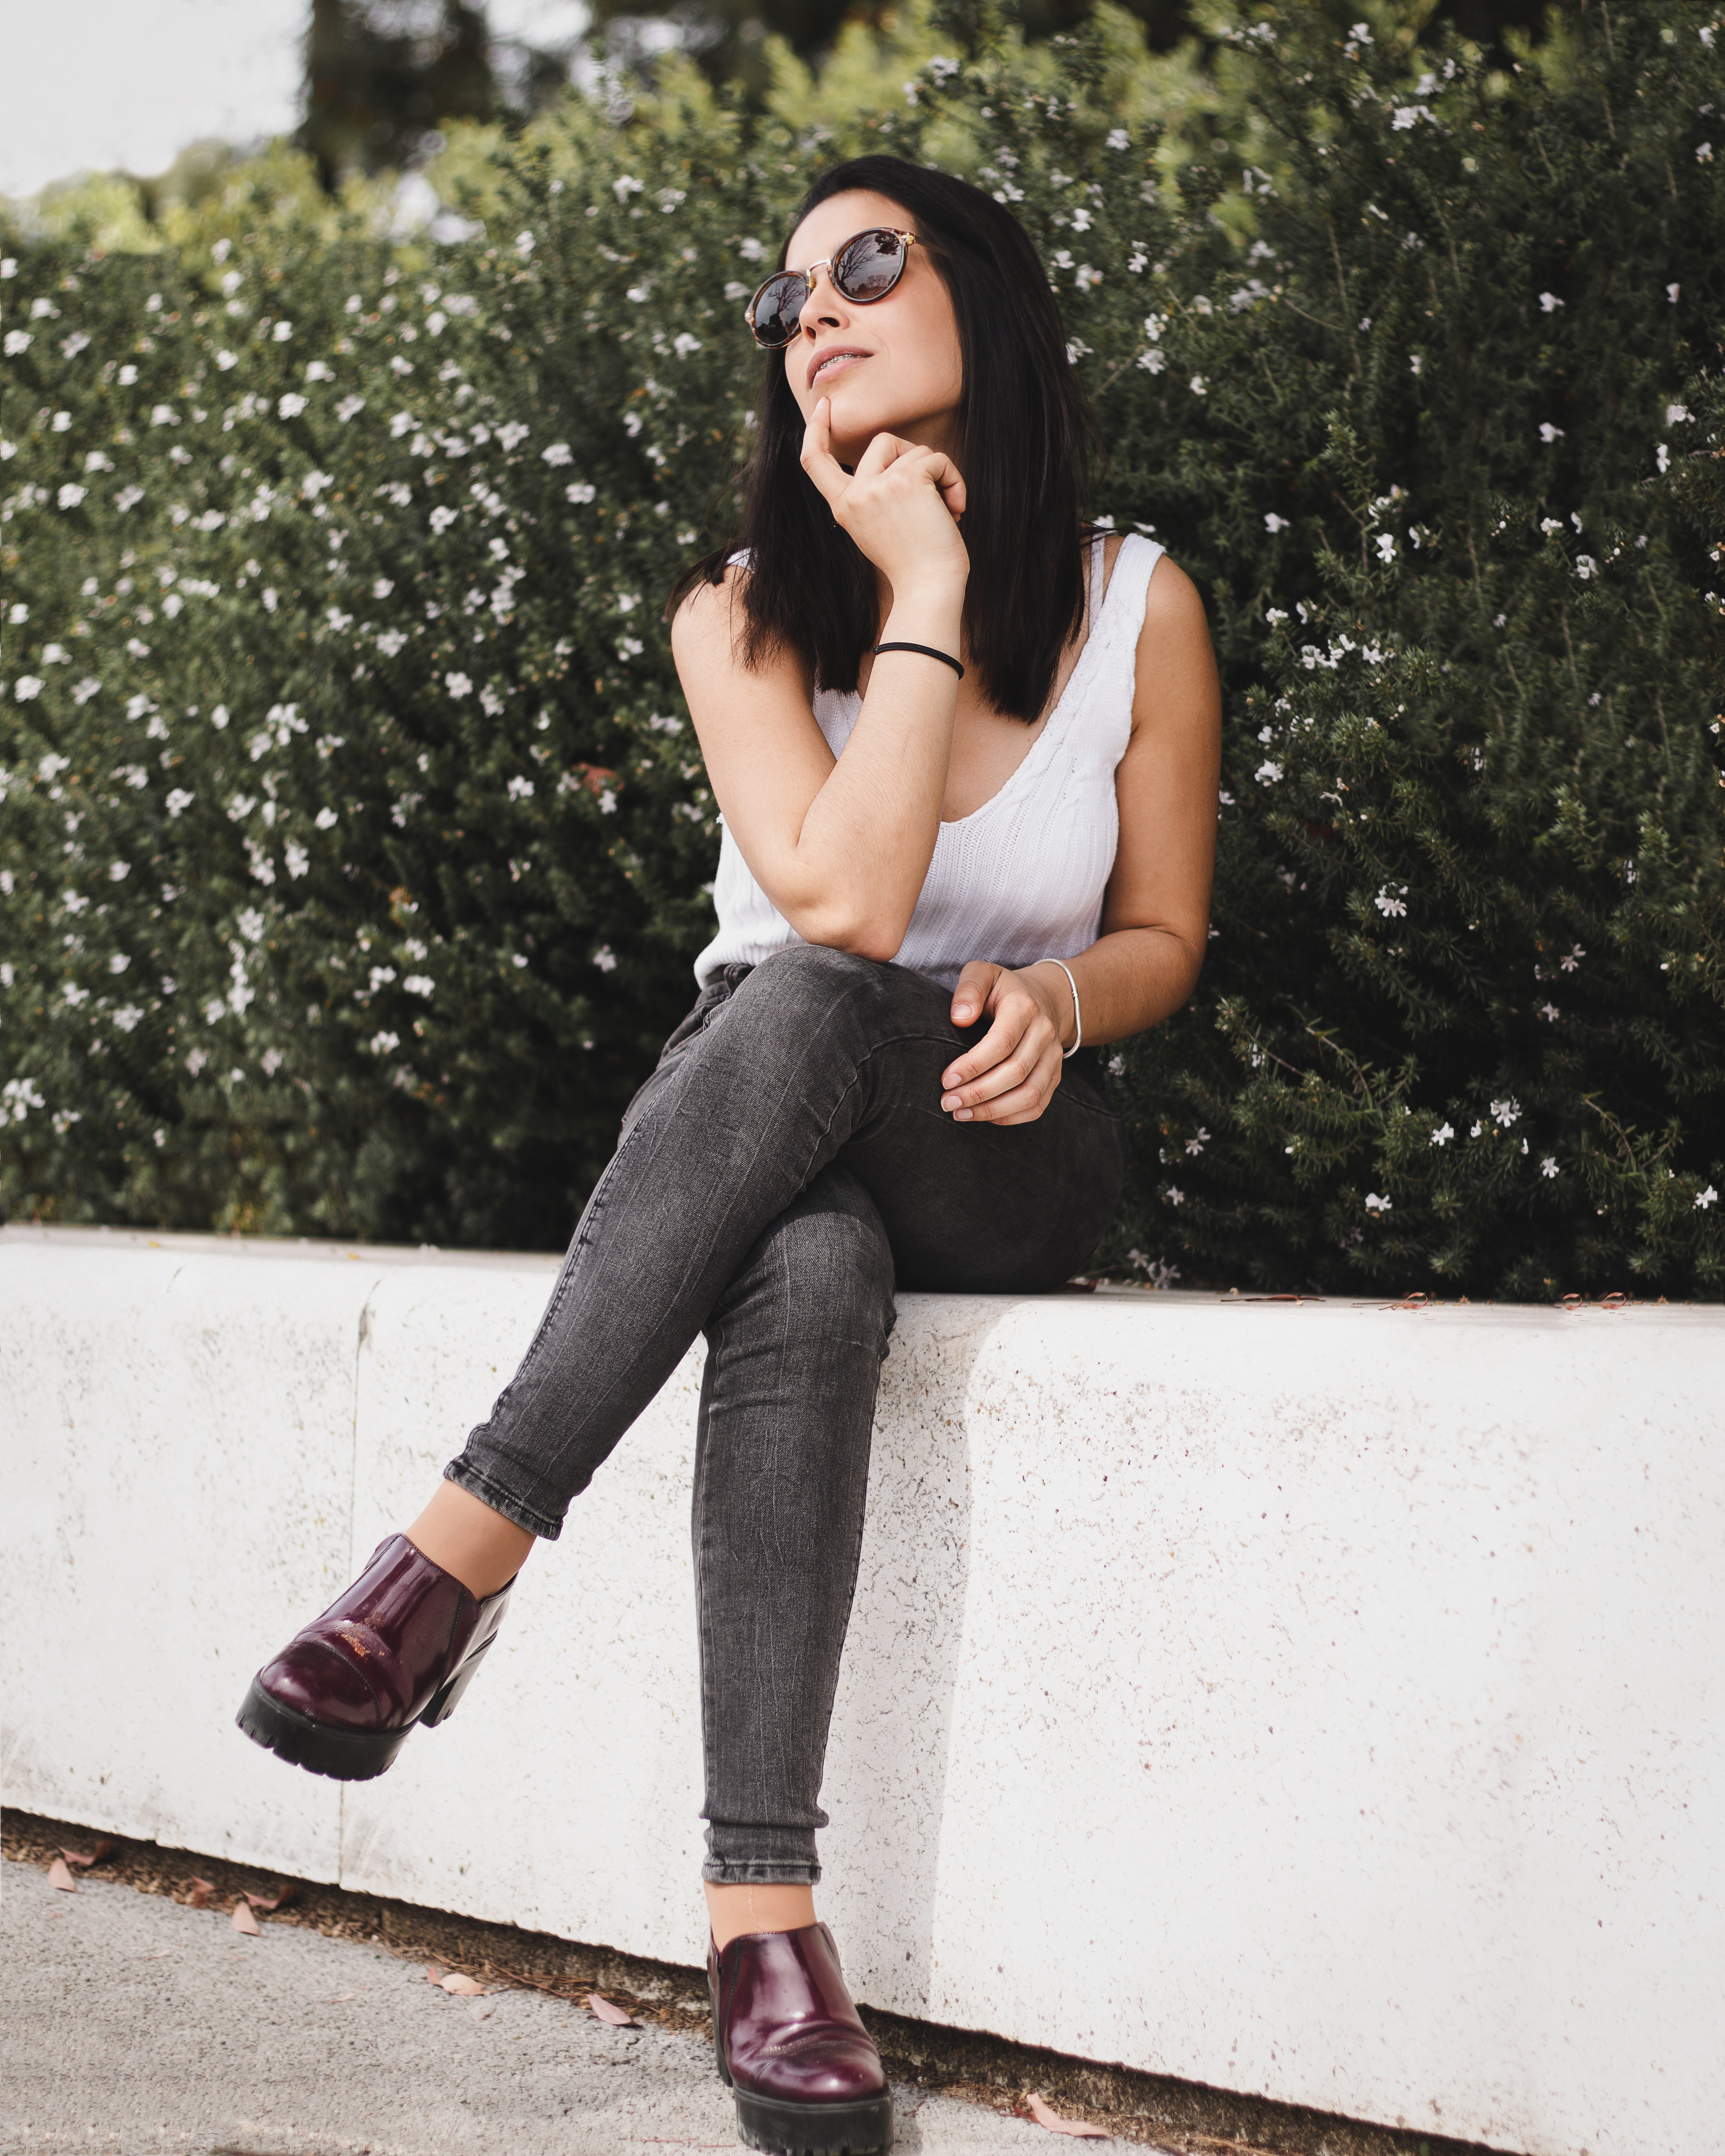 woman wearing tank top, skinny jeans, sunglasses outfit sat on concrete gutter